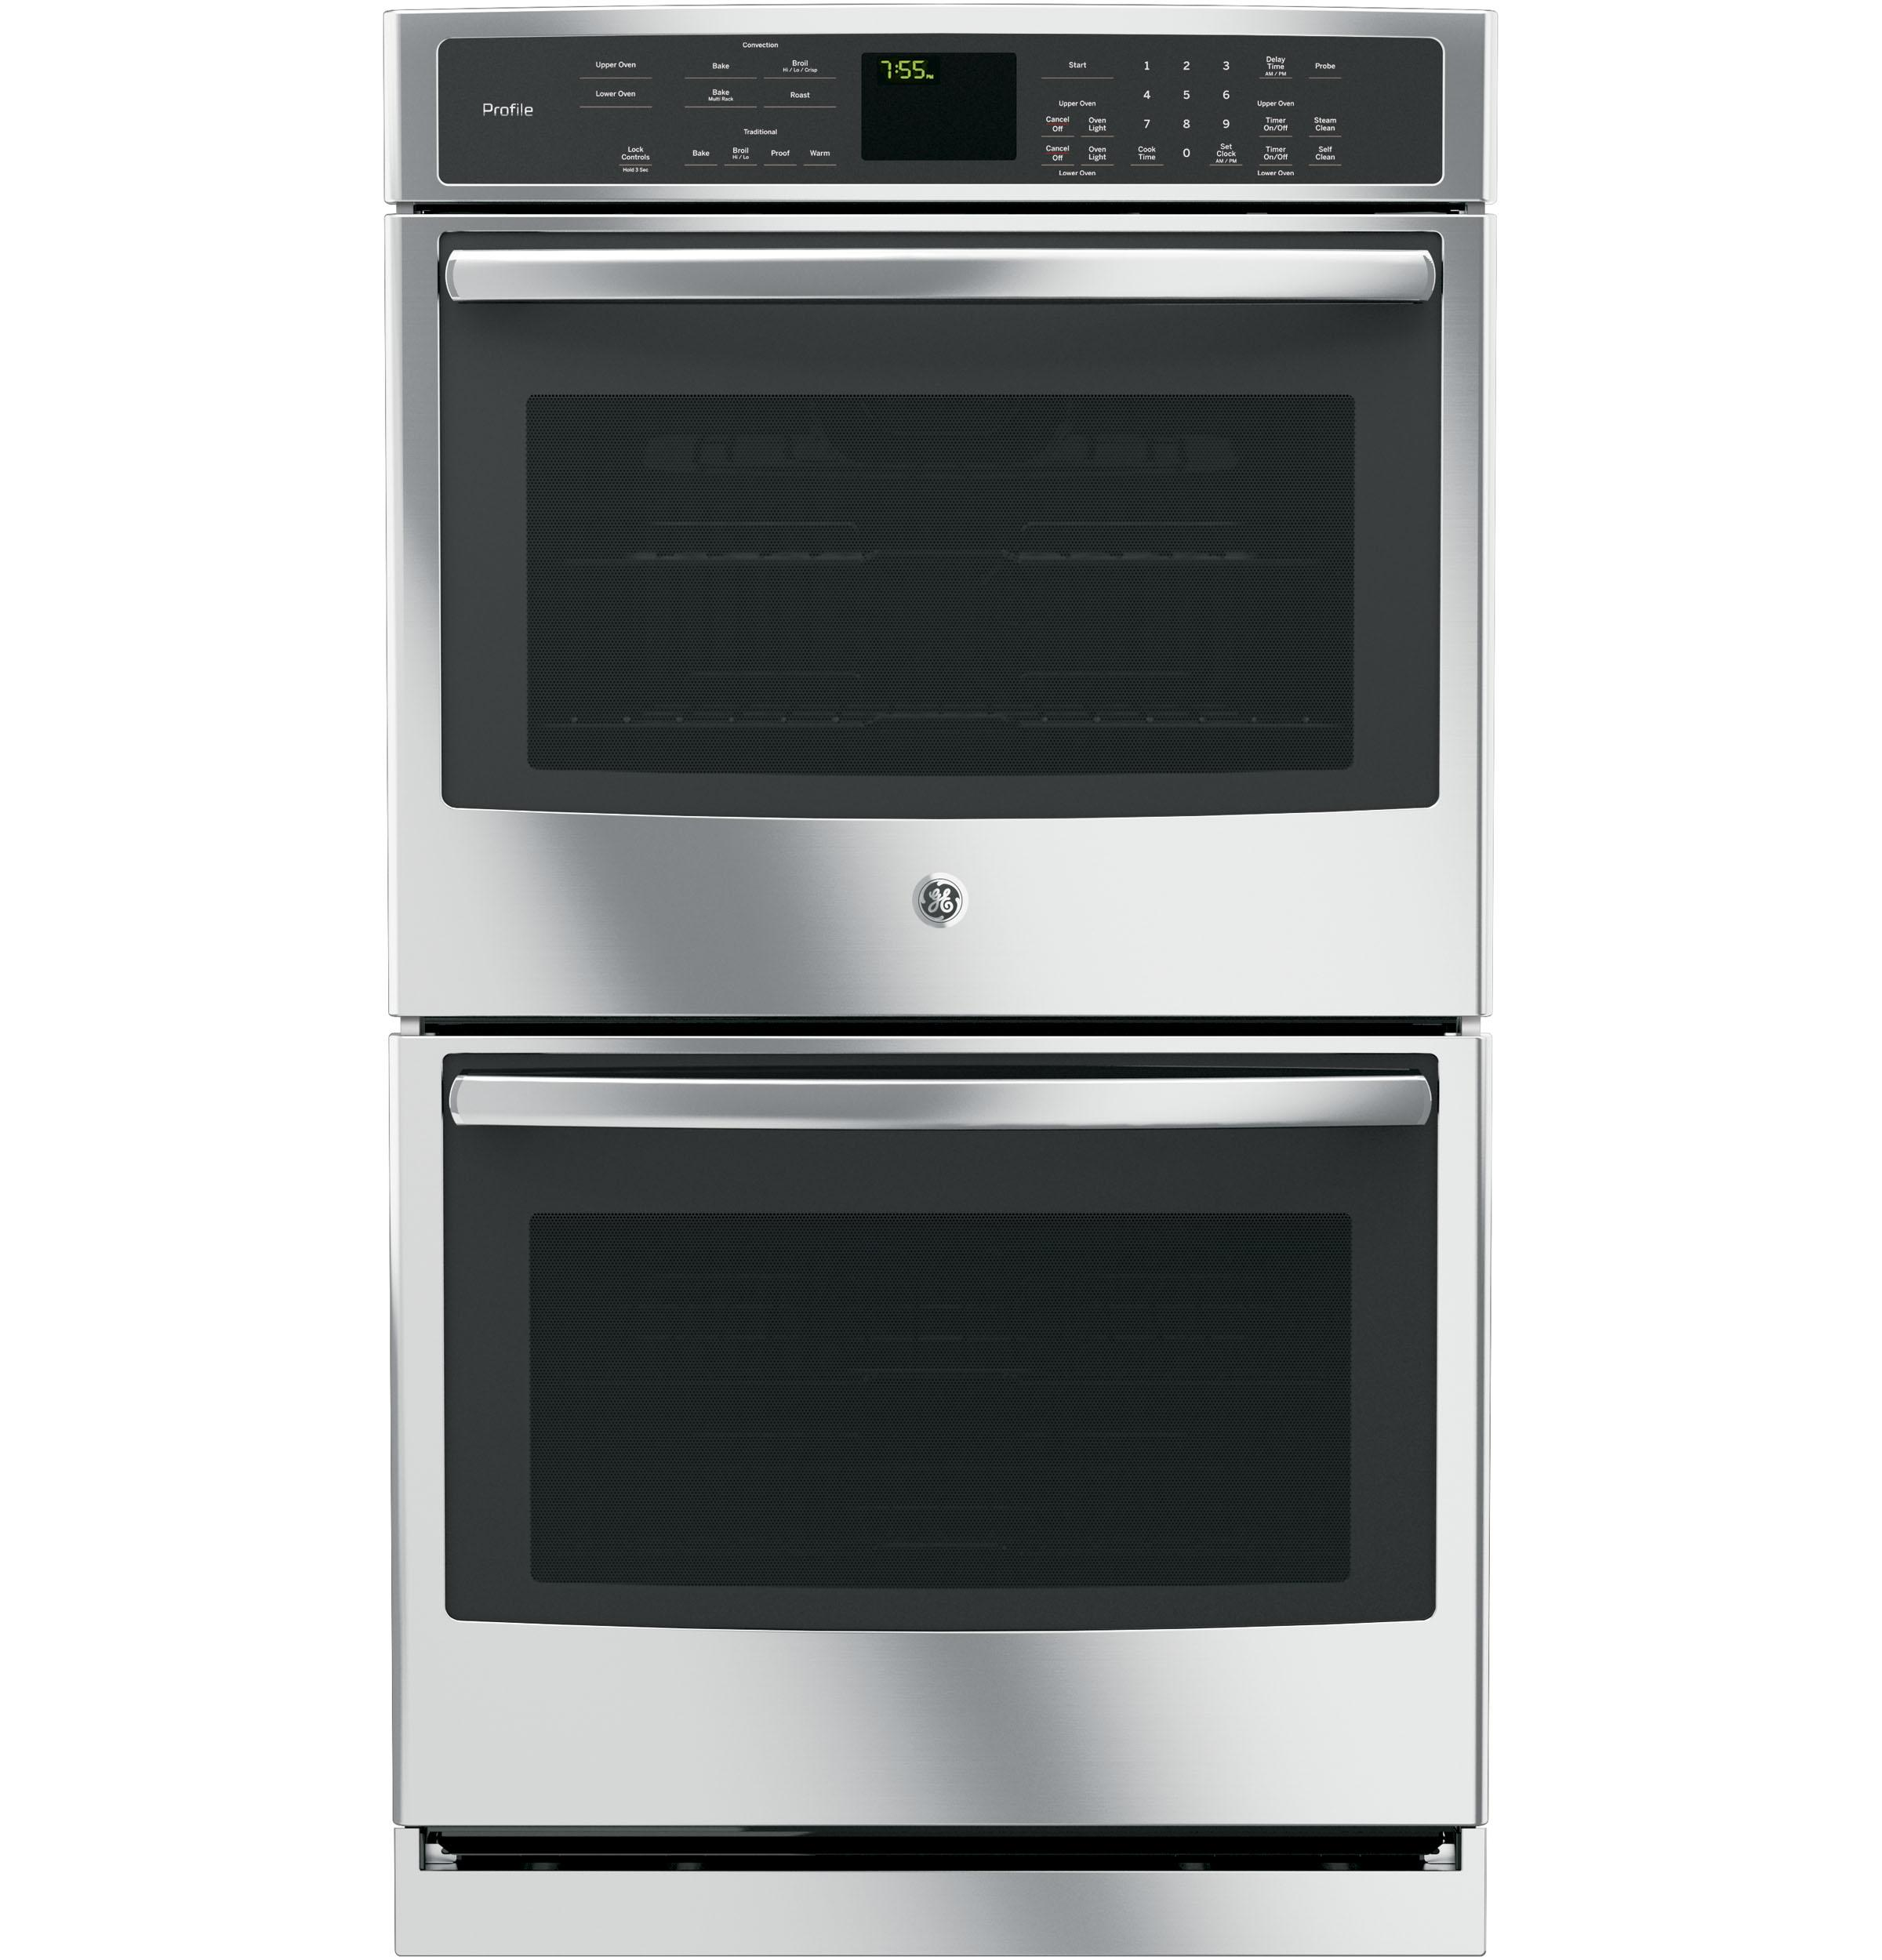 "GE Profile(TM) Series 30"" Built-In Double Wall Oven with Convection